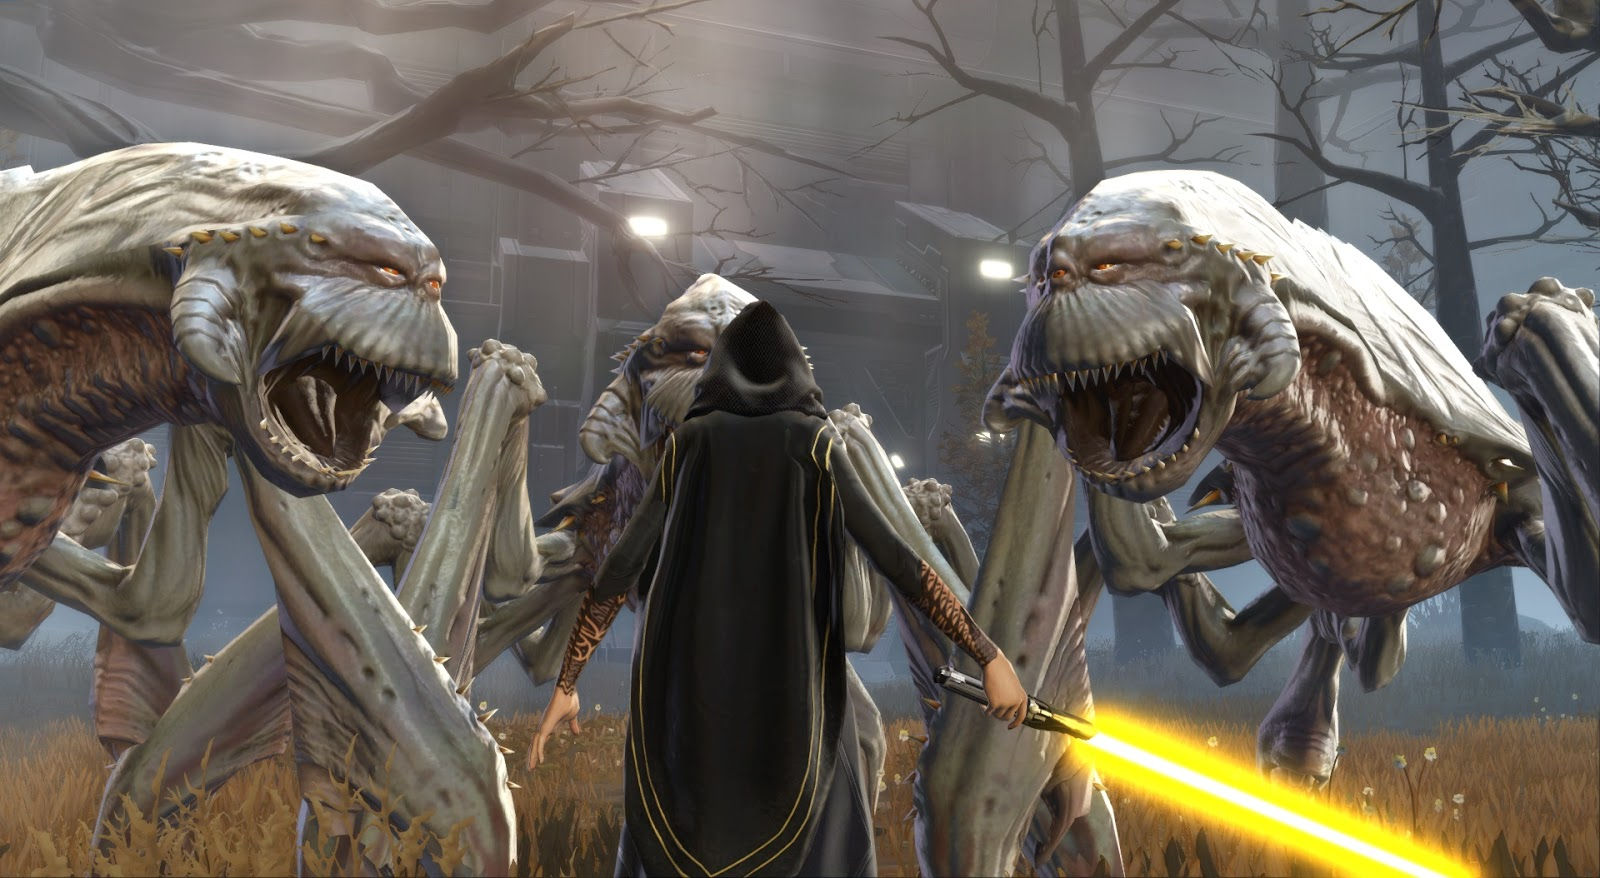 Going Commando | A SWTOR Fan Blog: KotET Chapter 7 Master Mode on star wars home planet, obi-wan kenobi home planet, anakin skywalker home planet, bothan home planet,